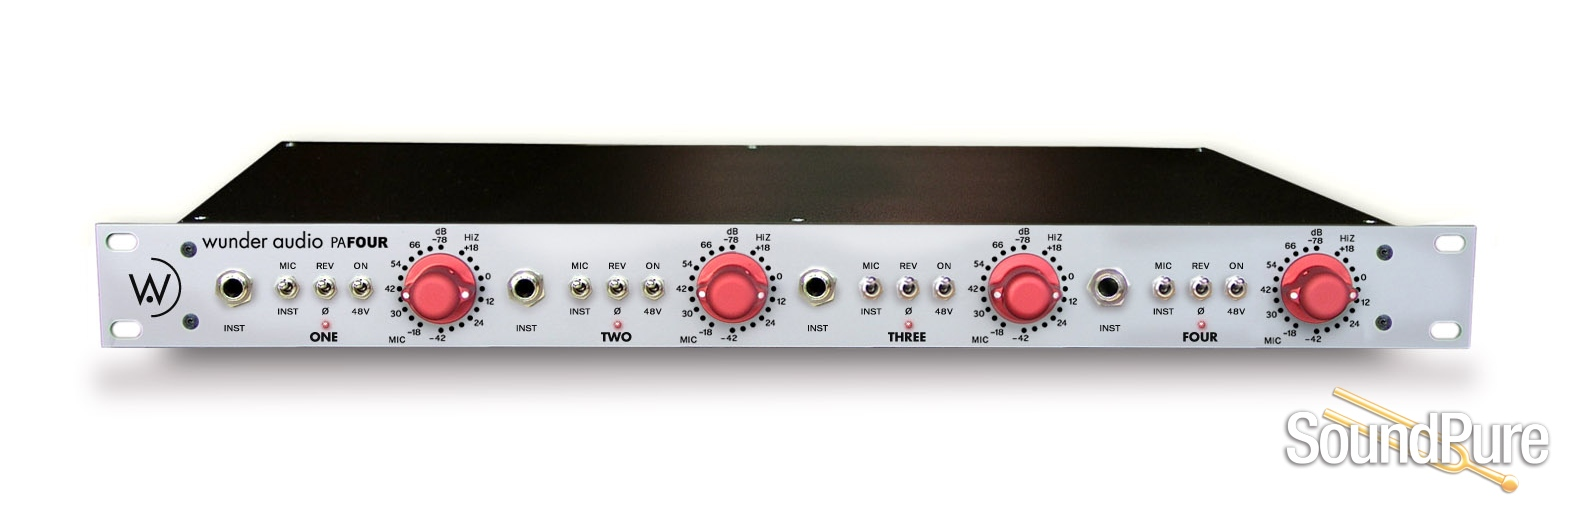 Wunder Audio Pafour Plus 4ch Preamp